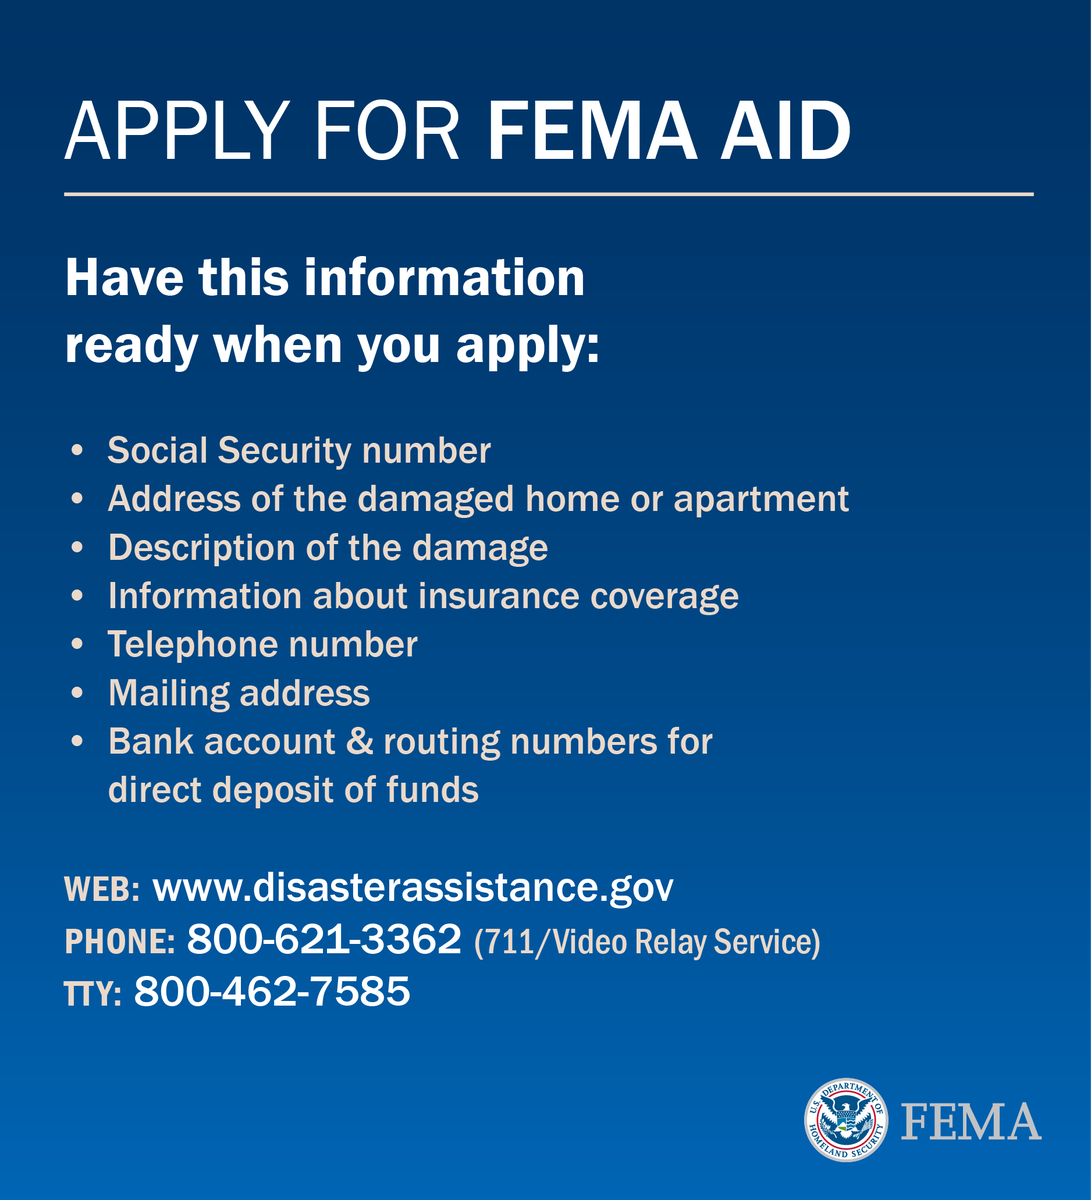 If you were affected by the #LAflood, apply for assistance at https://t.co/mSsI4eEQev or call 800-621-3362. https://t.co/PdXAvF2Ohc